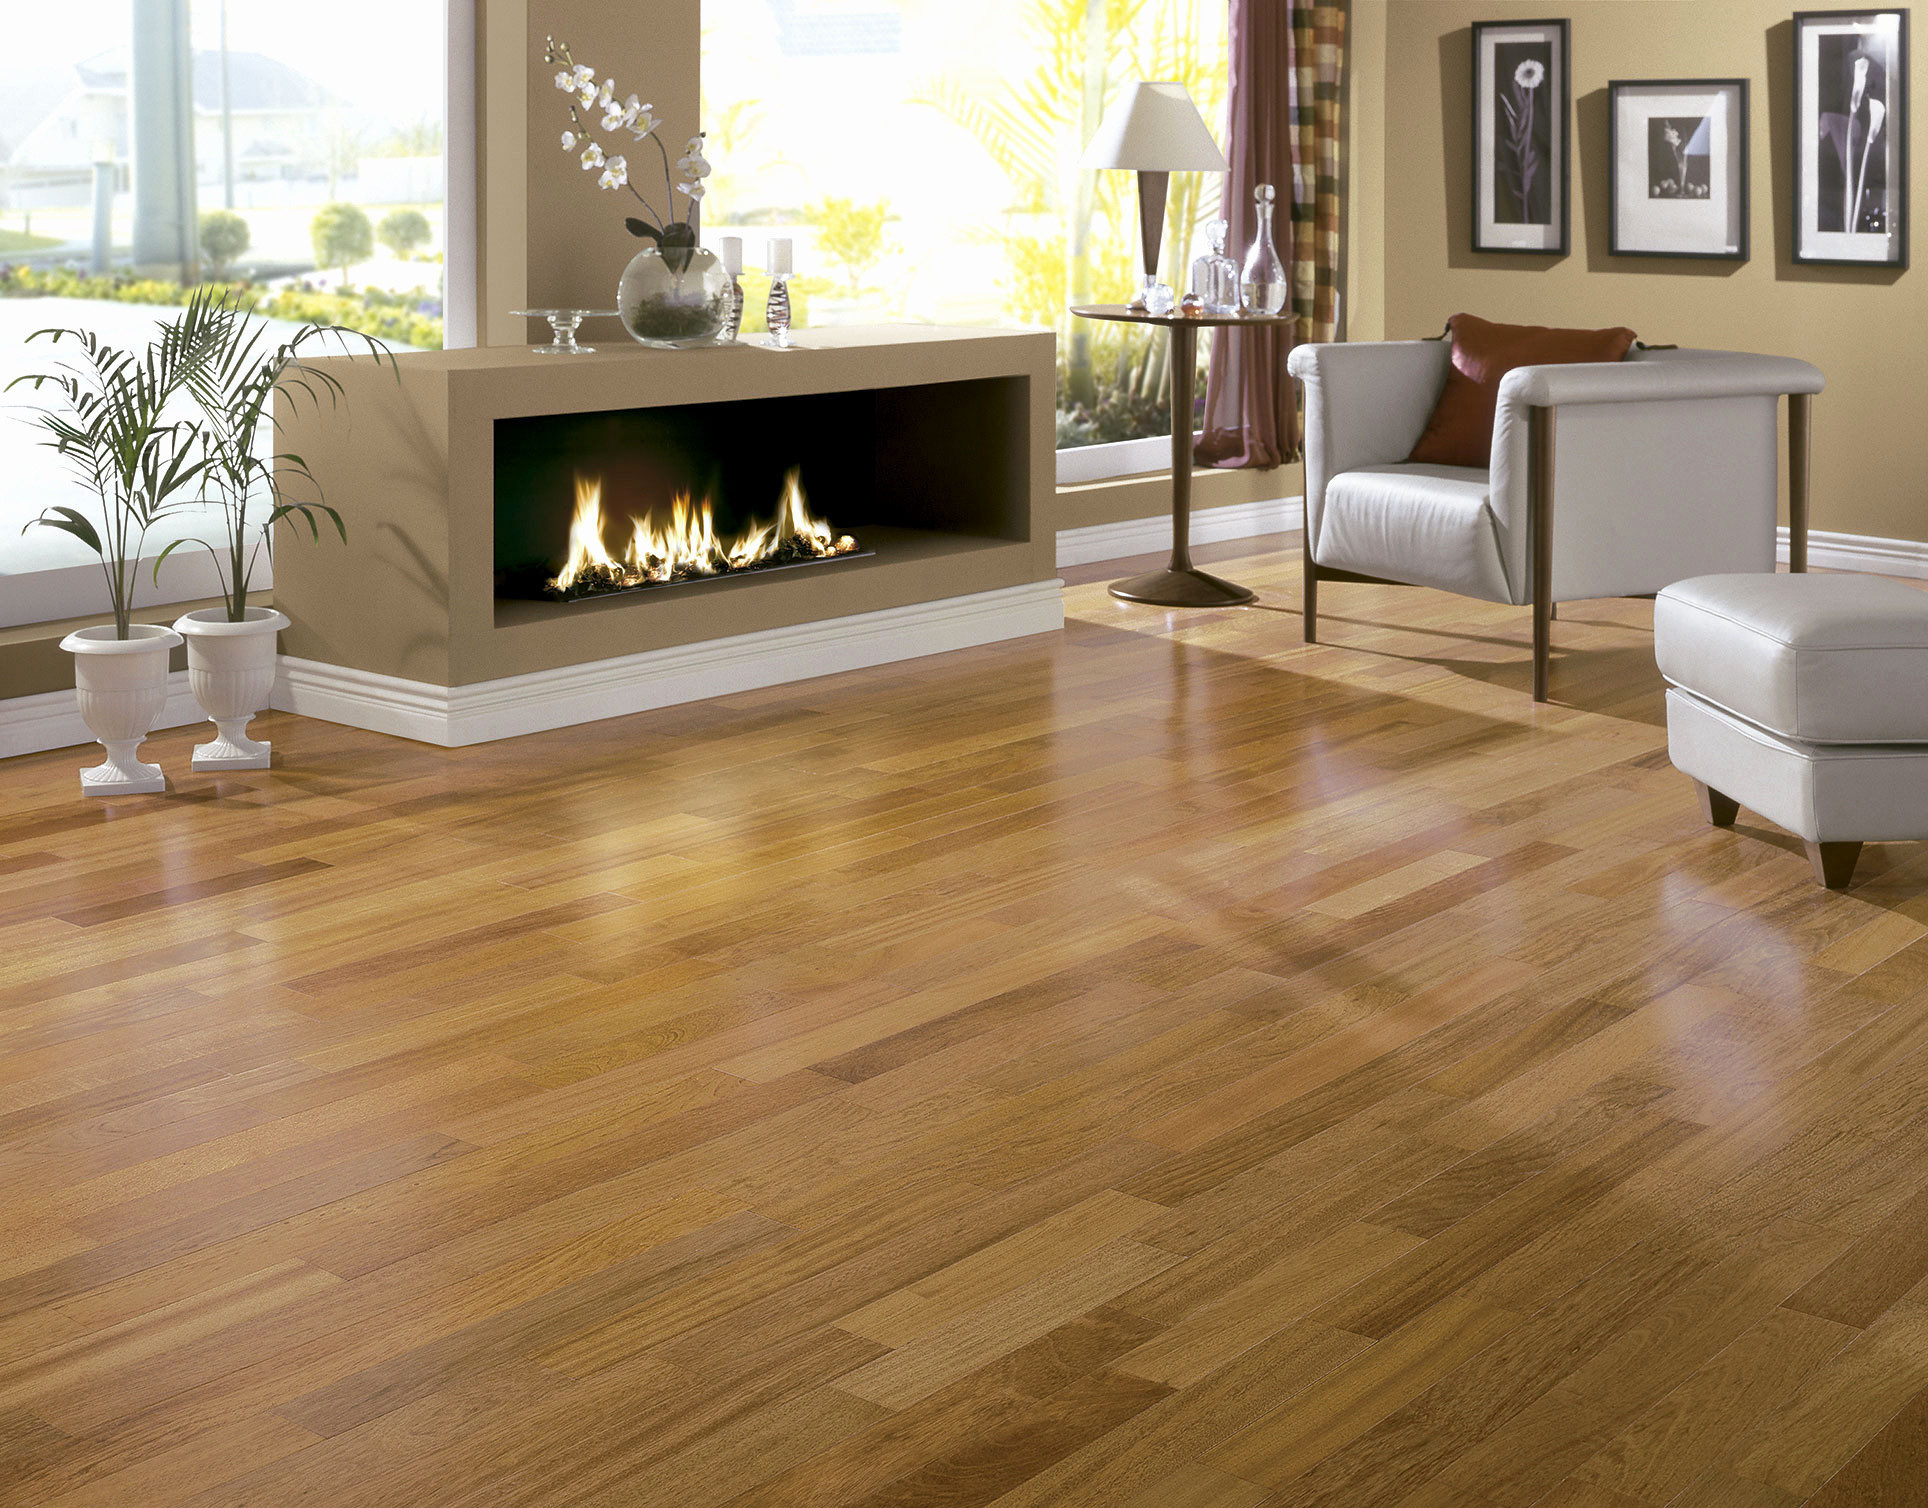 unfinished hardwood flooring charlotte nc of wlcu page 8 best home design ideas pertaining to 5 hardwood flooring best of engaging discount hardwood flooring 5 where to buy inspirational 0d